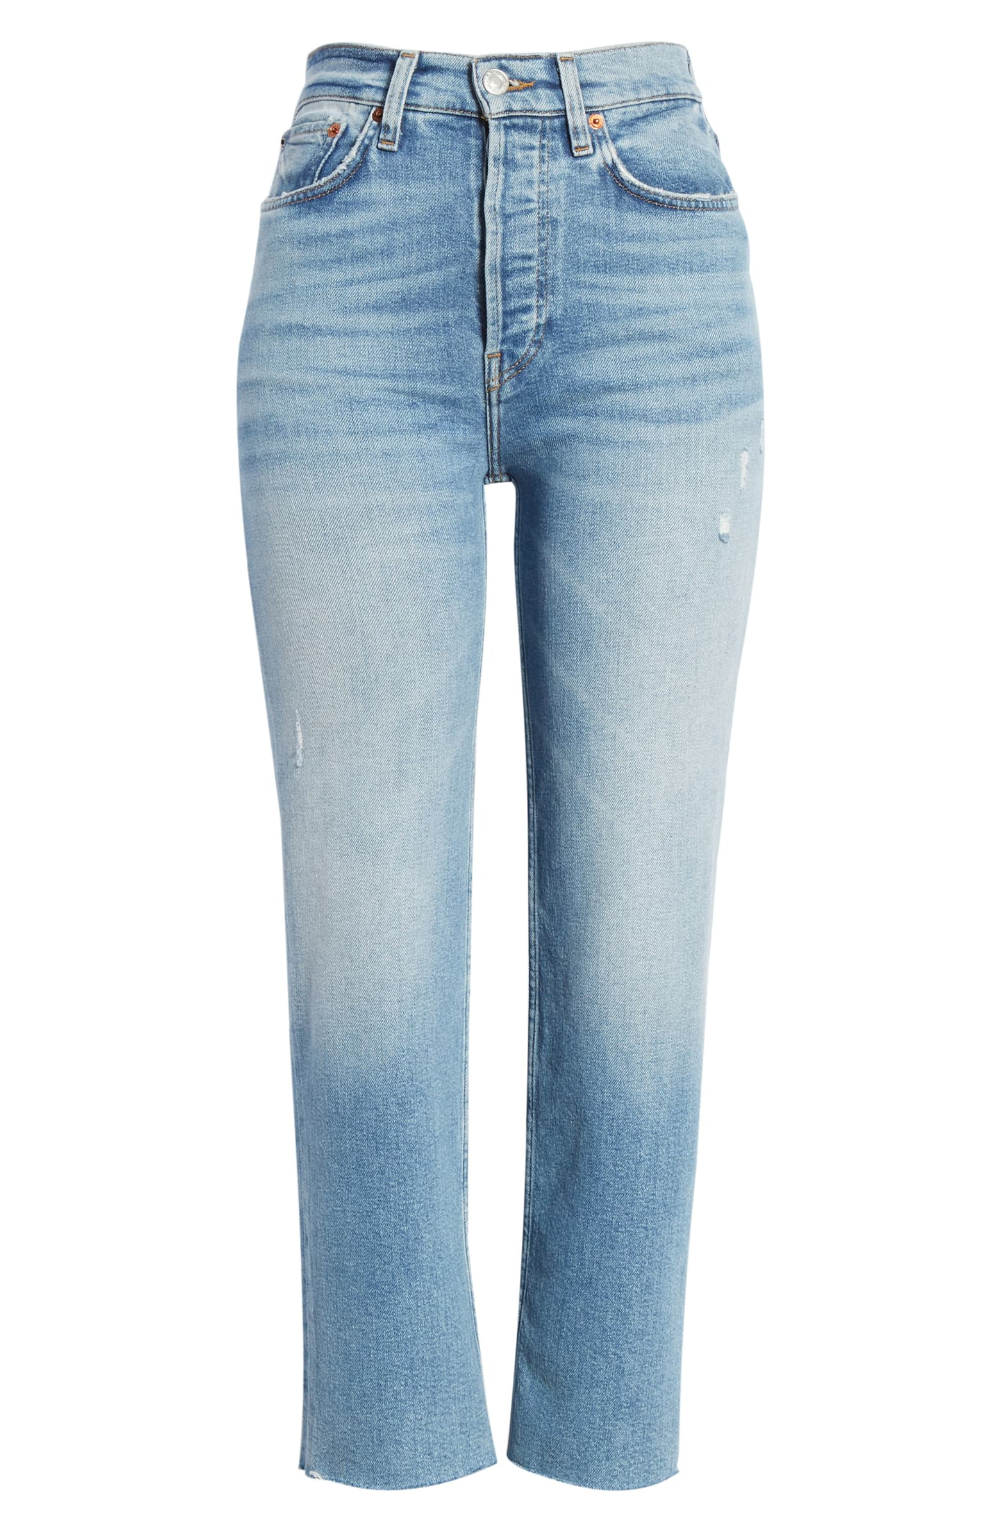 Re Done Originals High Waist Stovepipe Jeans Nordstrom In 2020 Stylist Outfit Clothes Denim Fashion